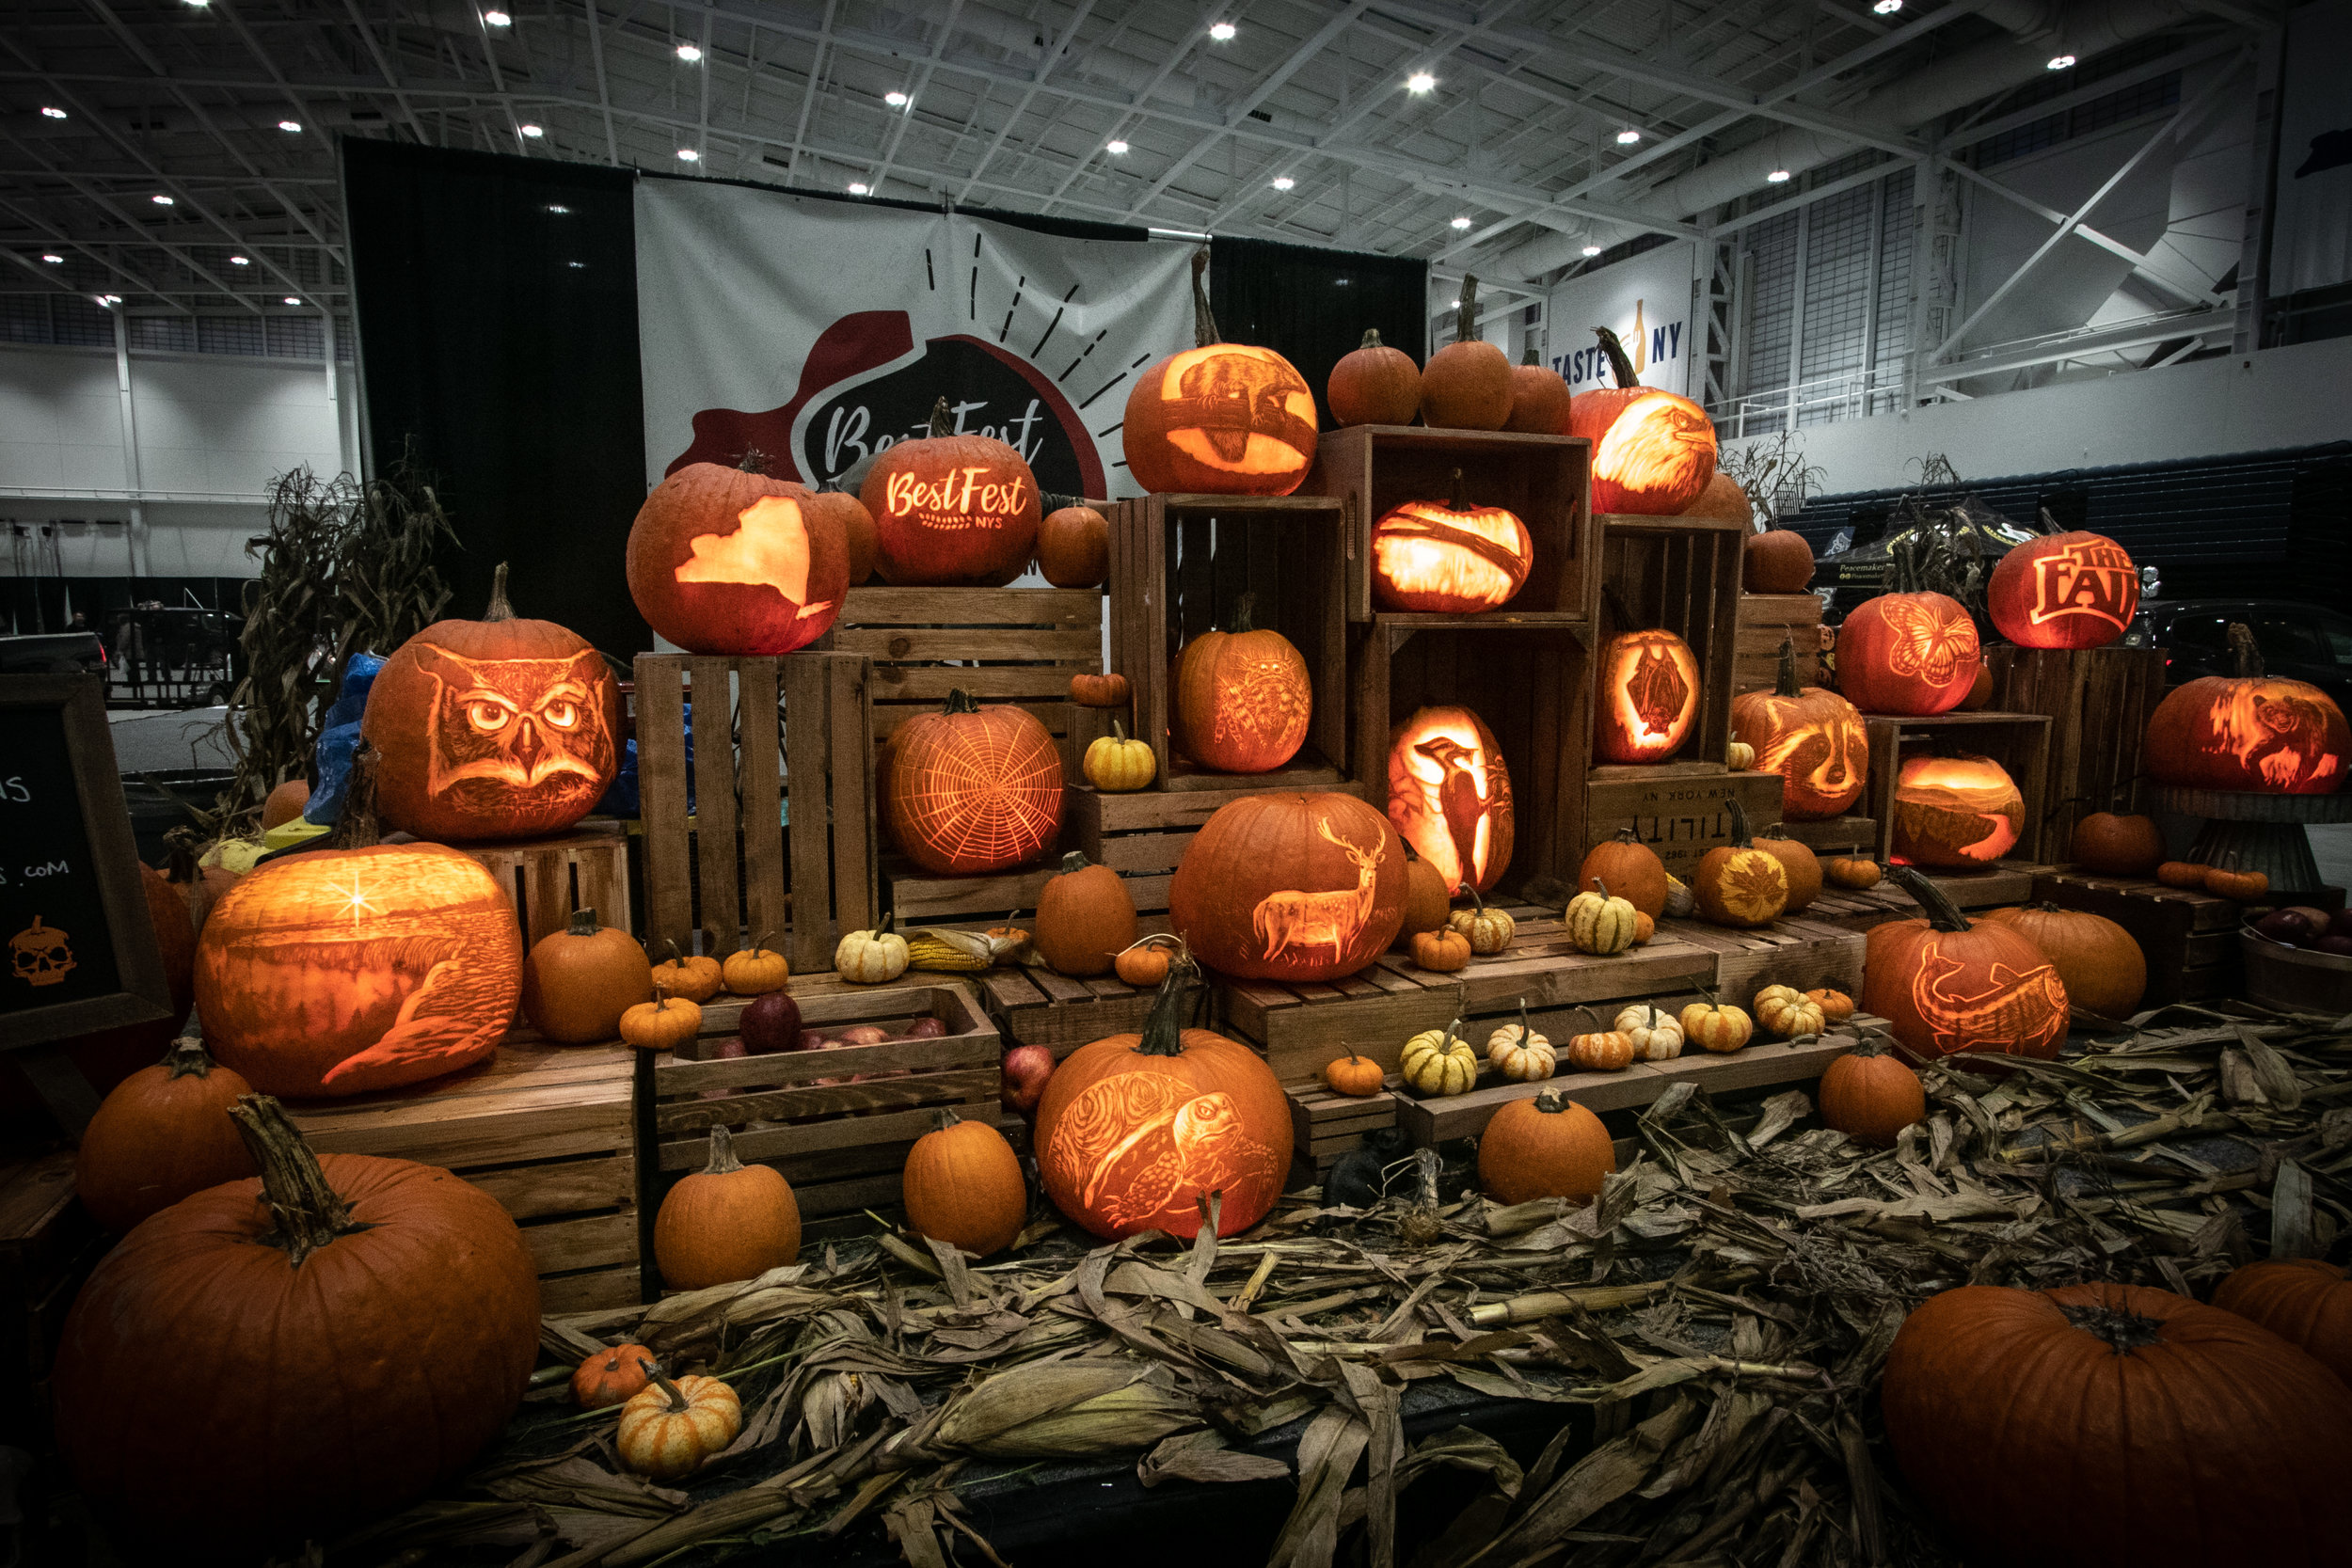 Pumpkin installation created by Marc and Chris for Best of the Best in Syracuse, NY.